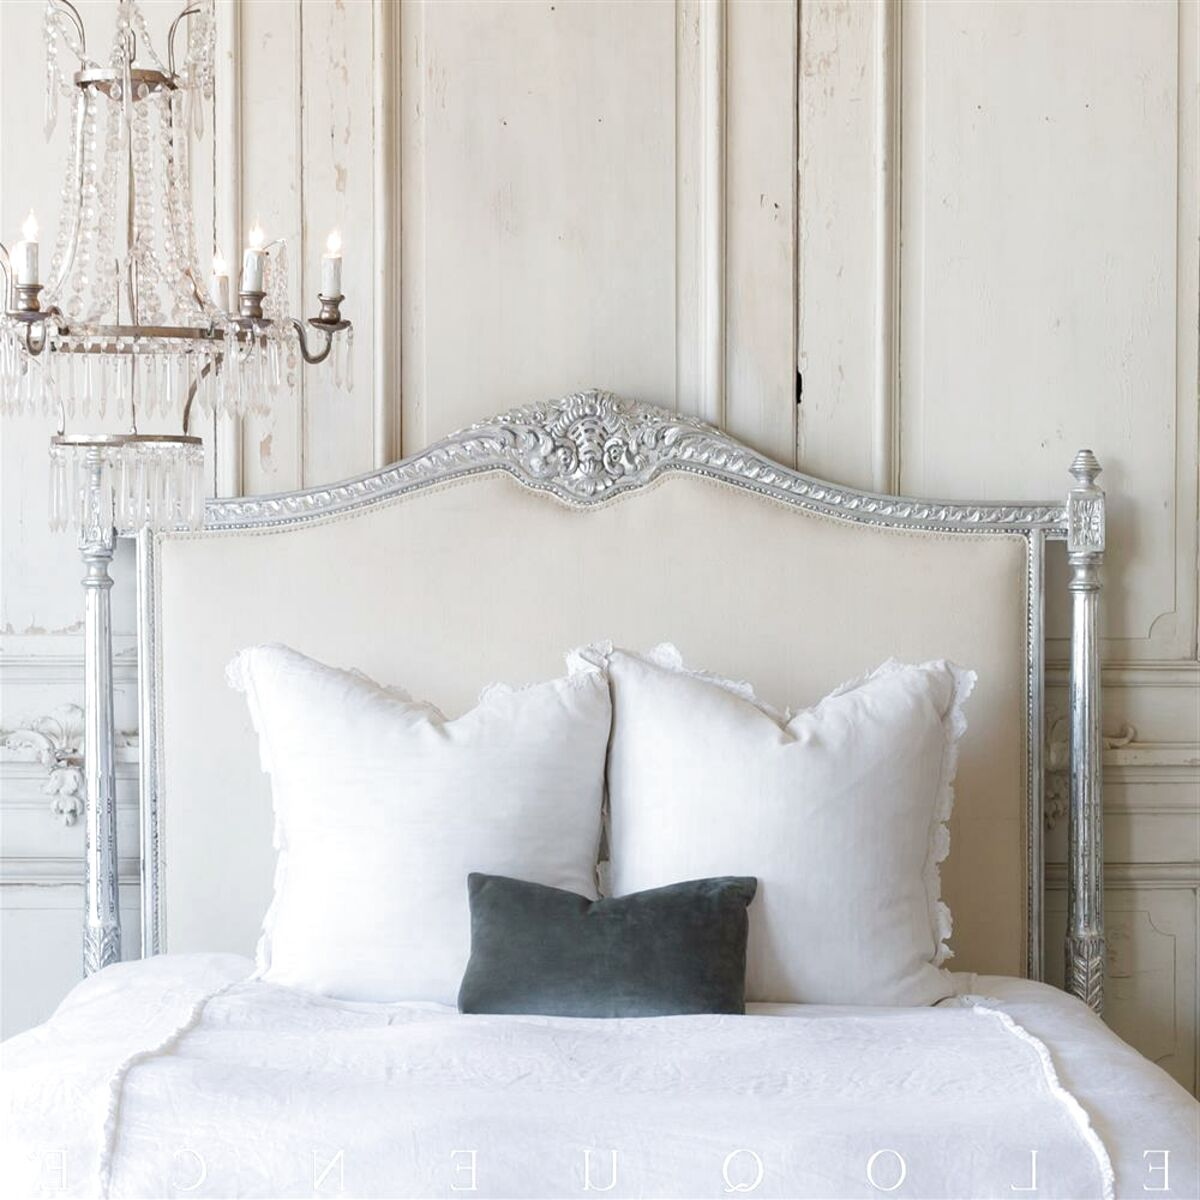 French Style Headboard For Sale In Uk View 38 Bargains